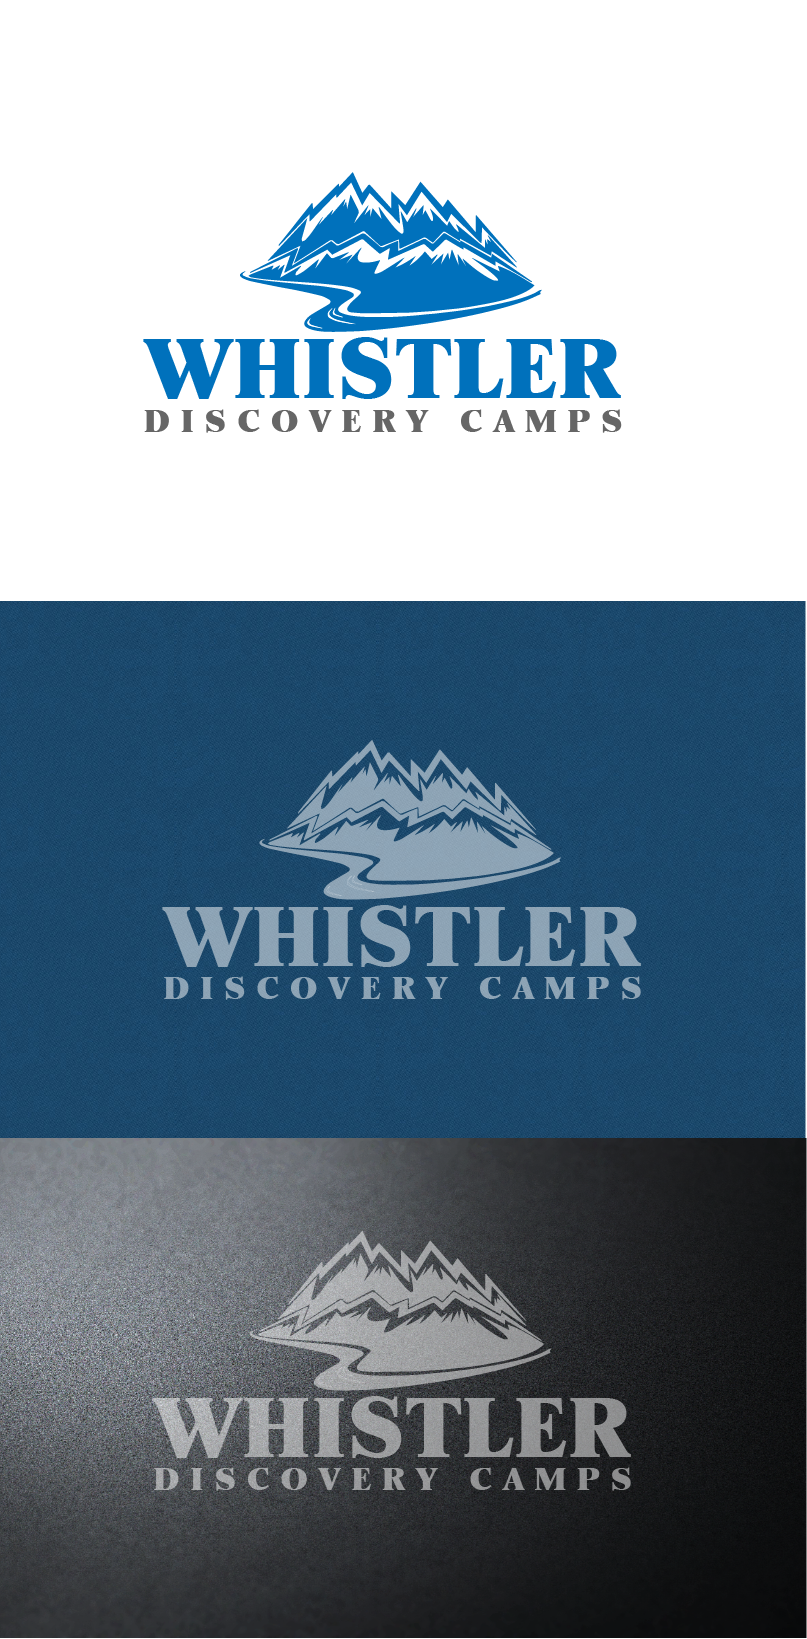 Logo Design by brands_in - Entry No. 137 in the Logo Design Contest Captivating Logo Design for Whistler Discovery Camps.